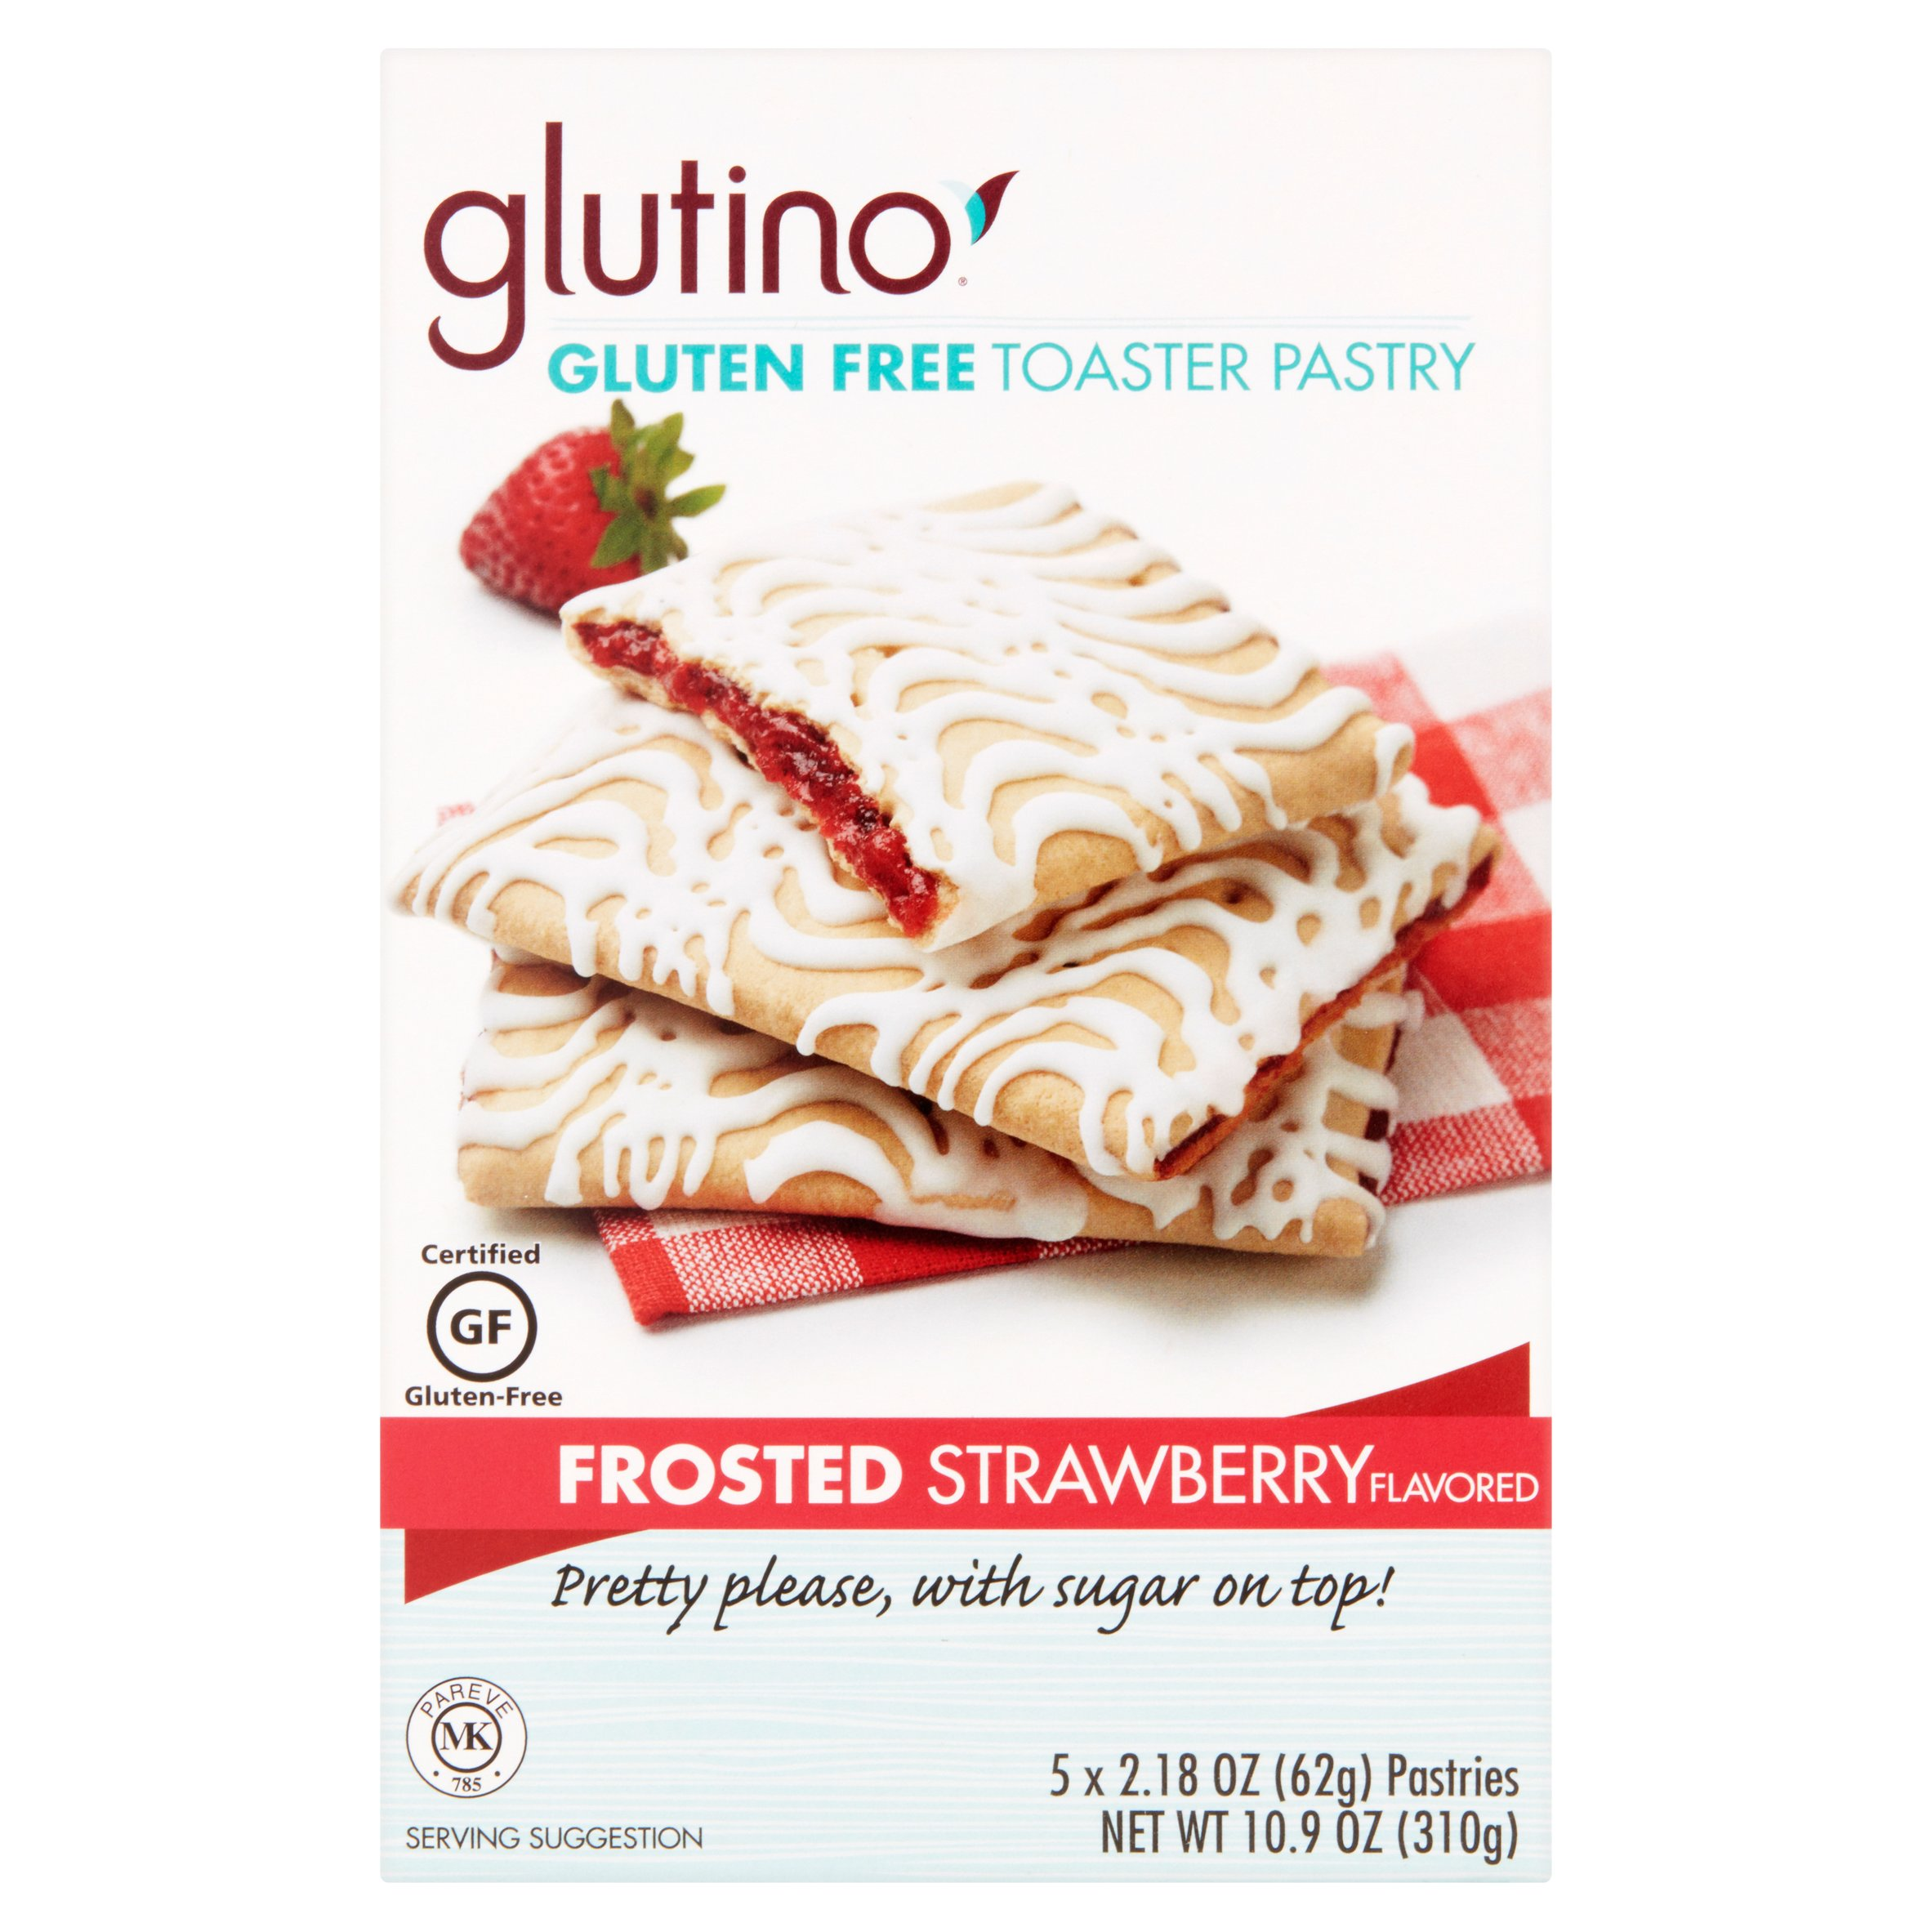 Glutino Frosted Strawberry Flavored Pastries, 2.18 oz, 6 pack by Glutino, a Division of Boulder Brands USA, Inc.